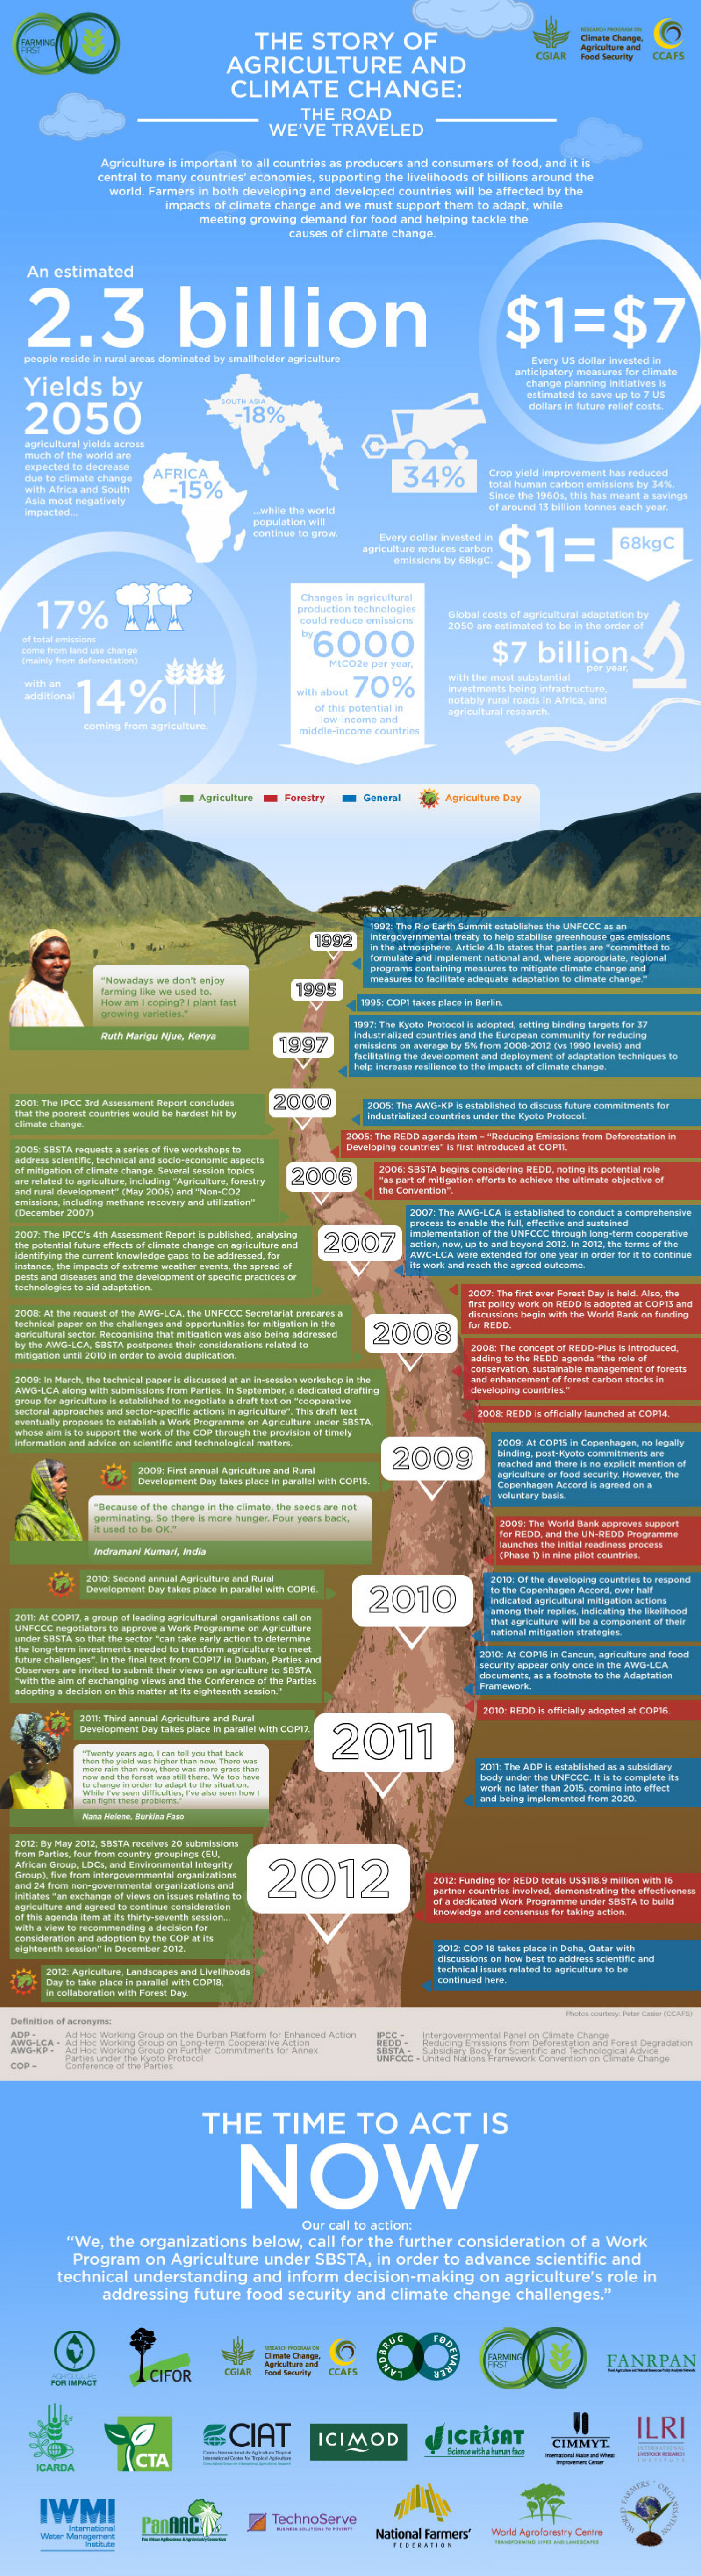 The Story of Agriculture and Climate Change: The Road We've Travelled Infographic